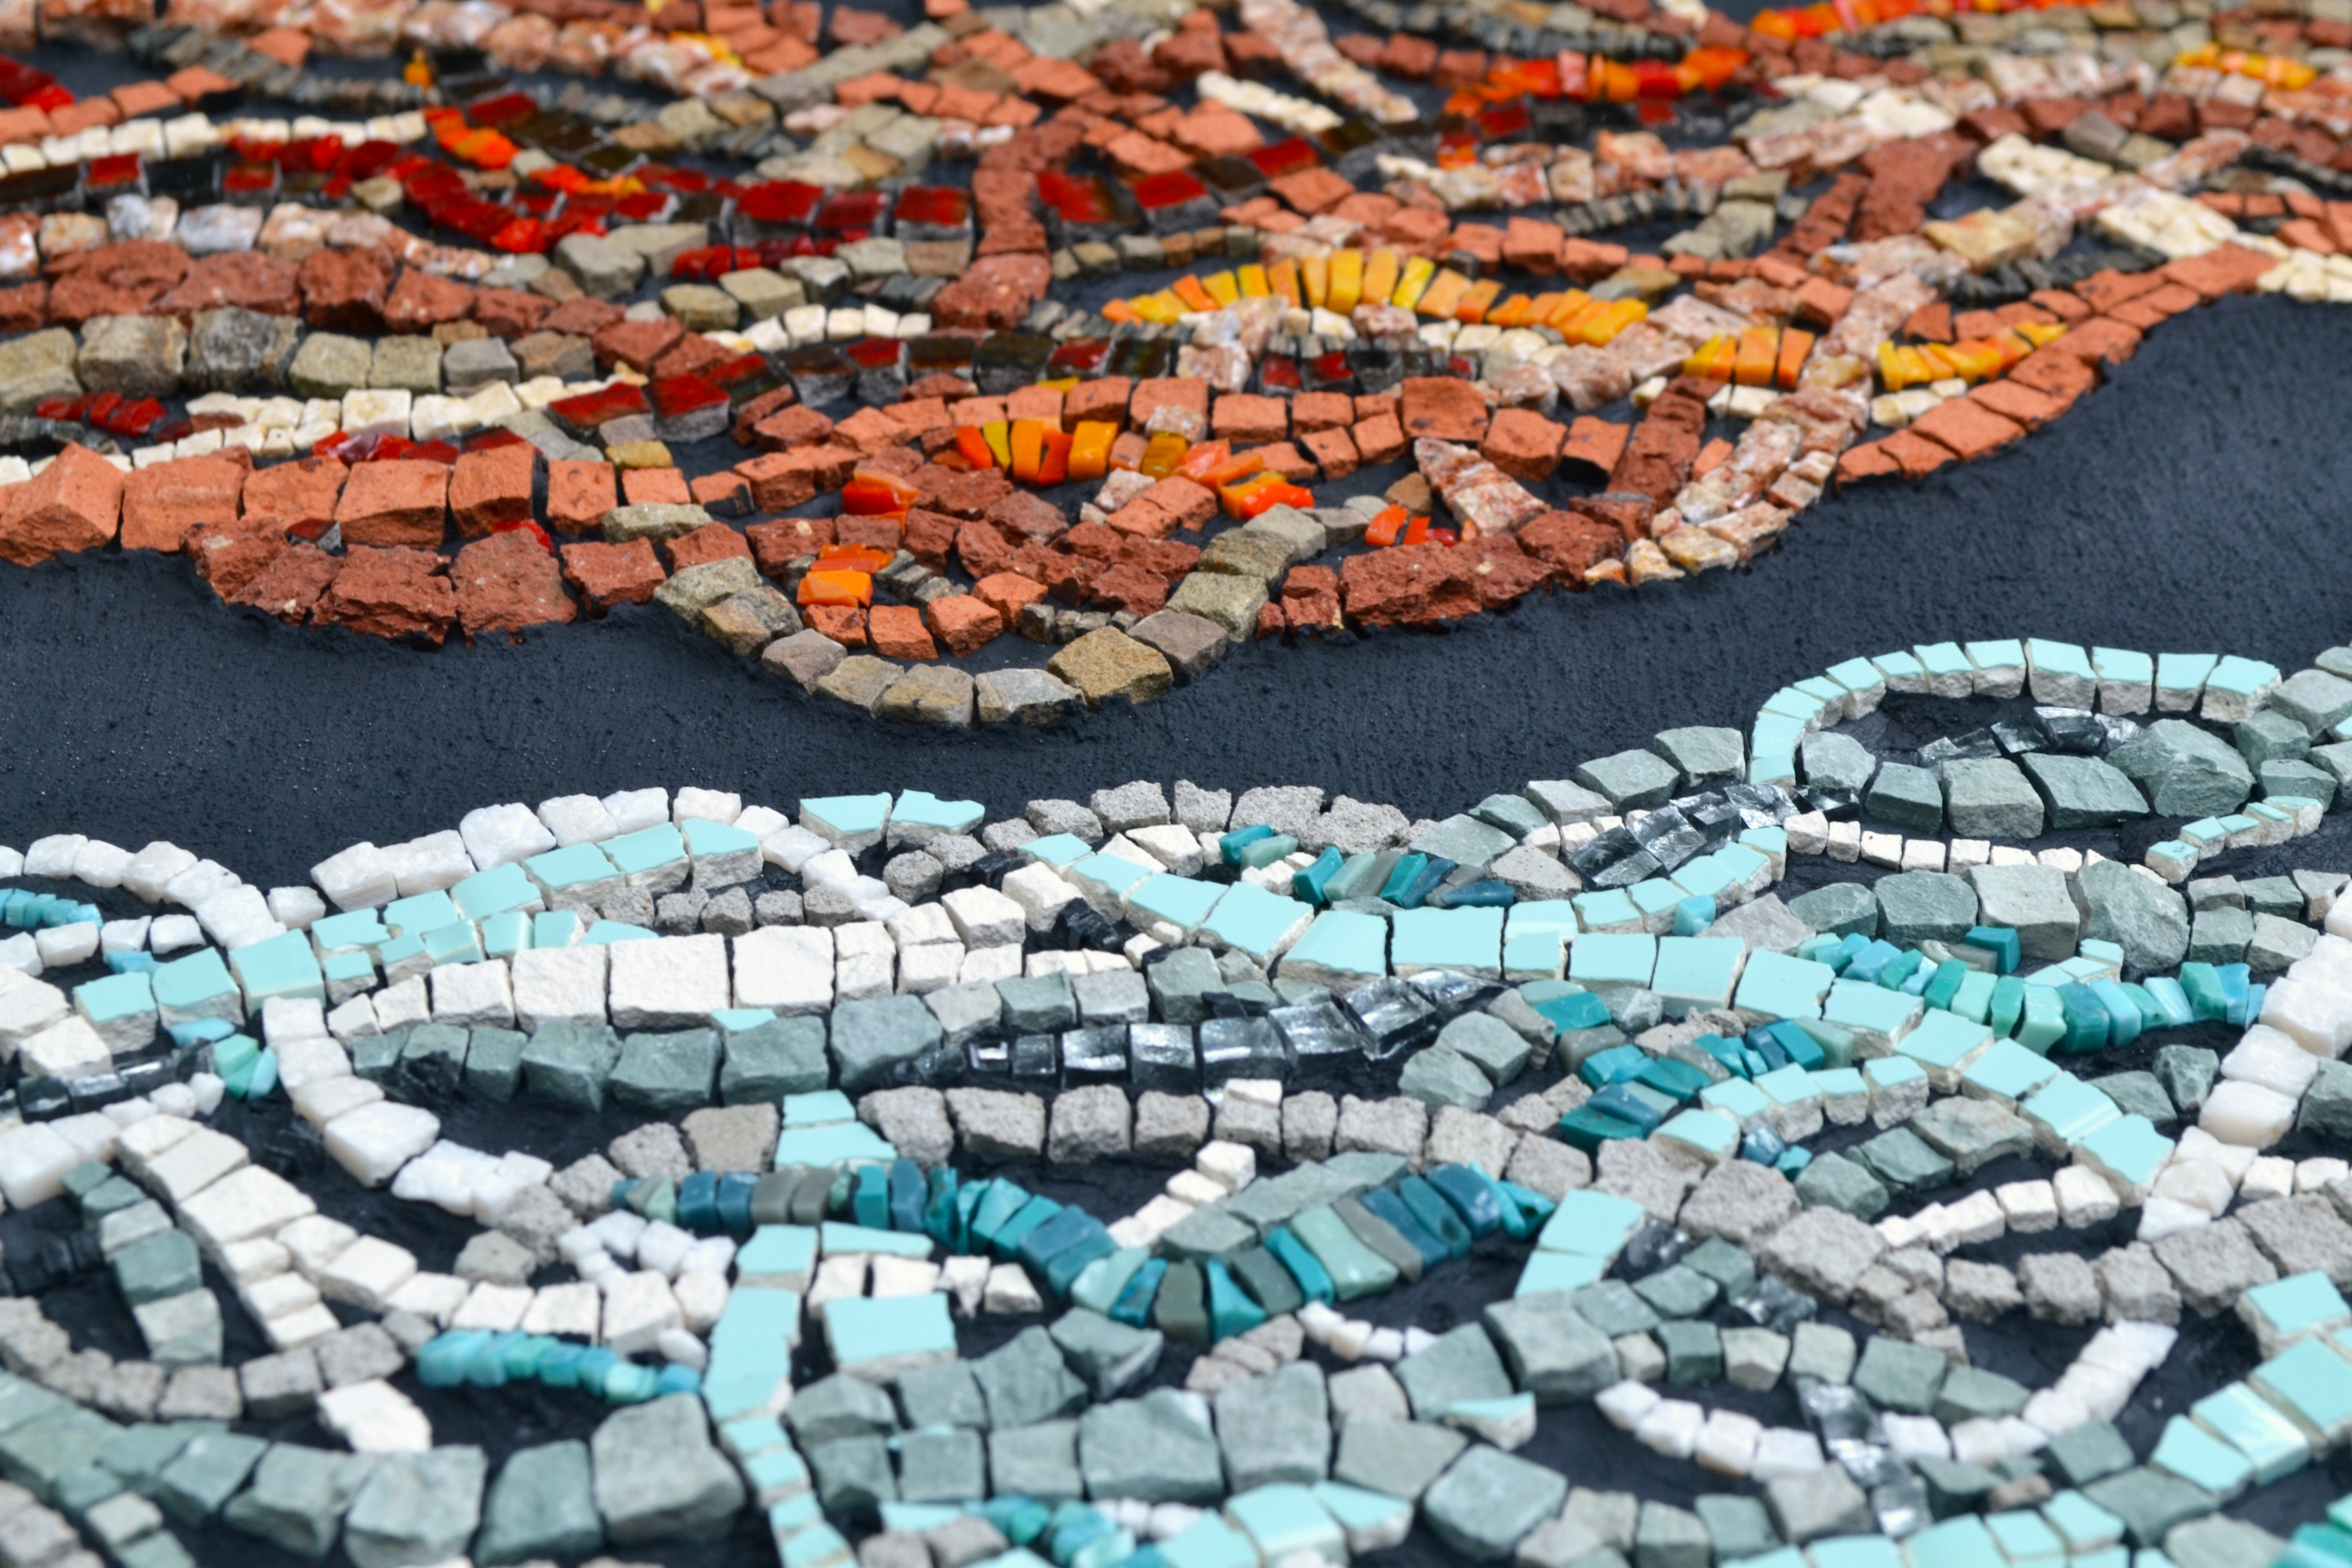 Julie Sperling mosaic